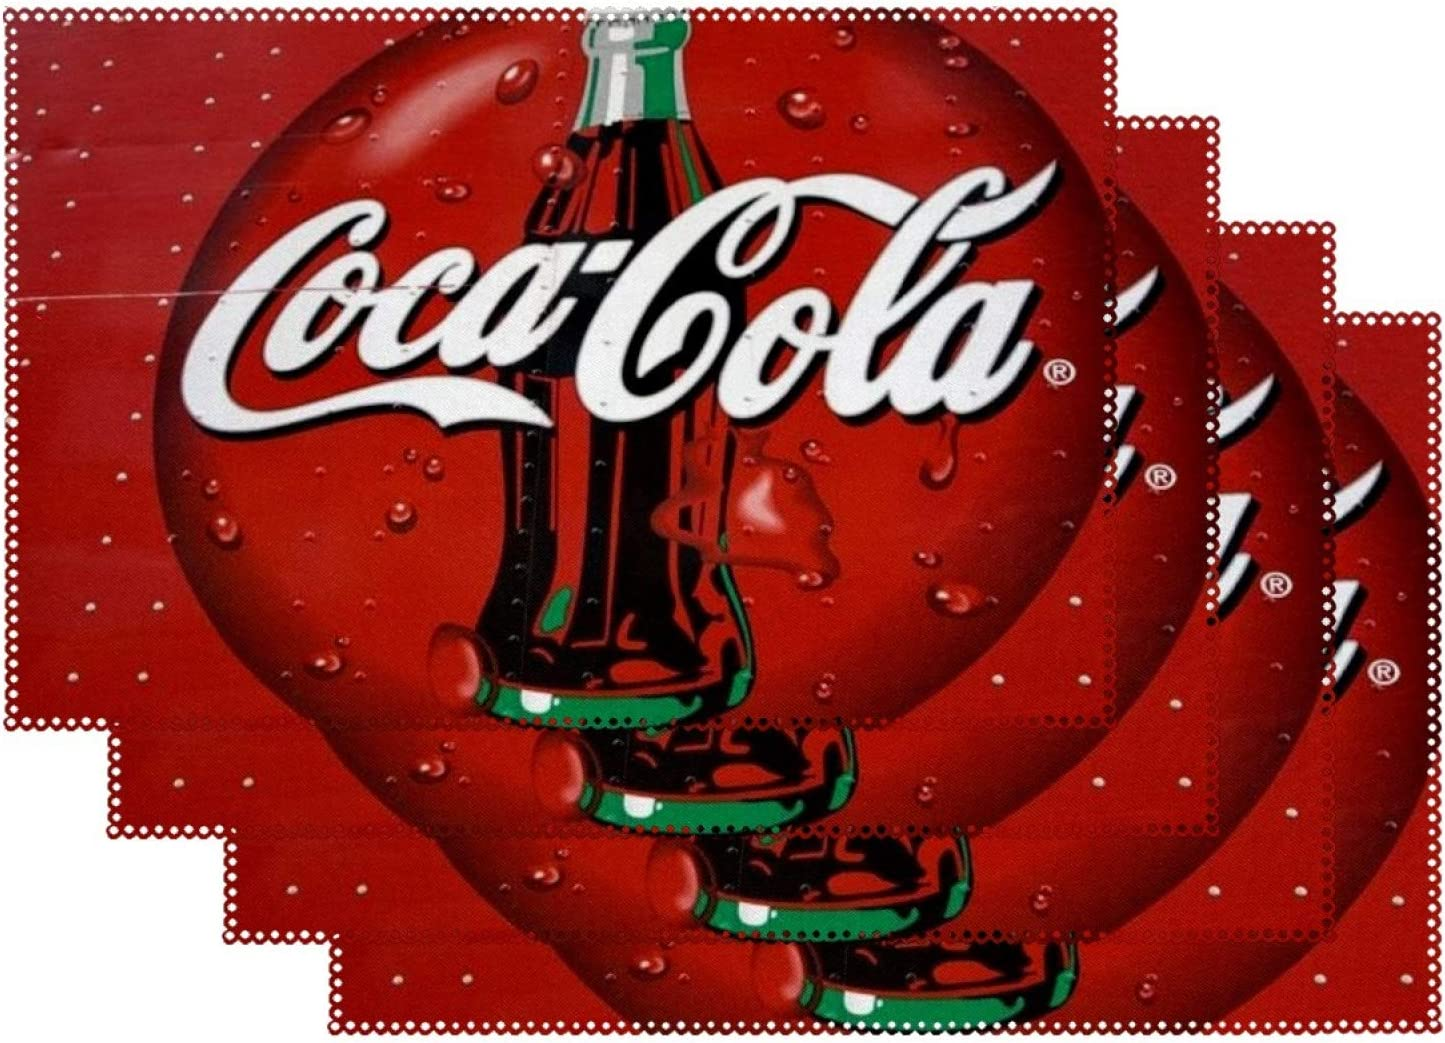 Coca-Cola Set of 4 Rectangle Placemats Heat-Resistant Table Mats Washable Polyester Place Mats for Kitchen Dining Decor